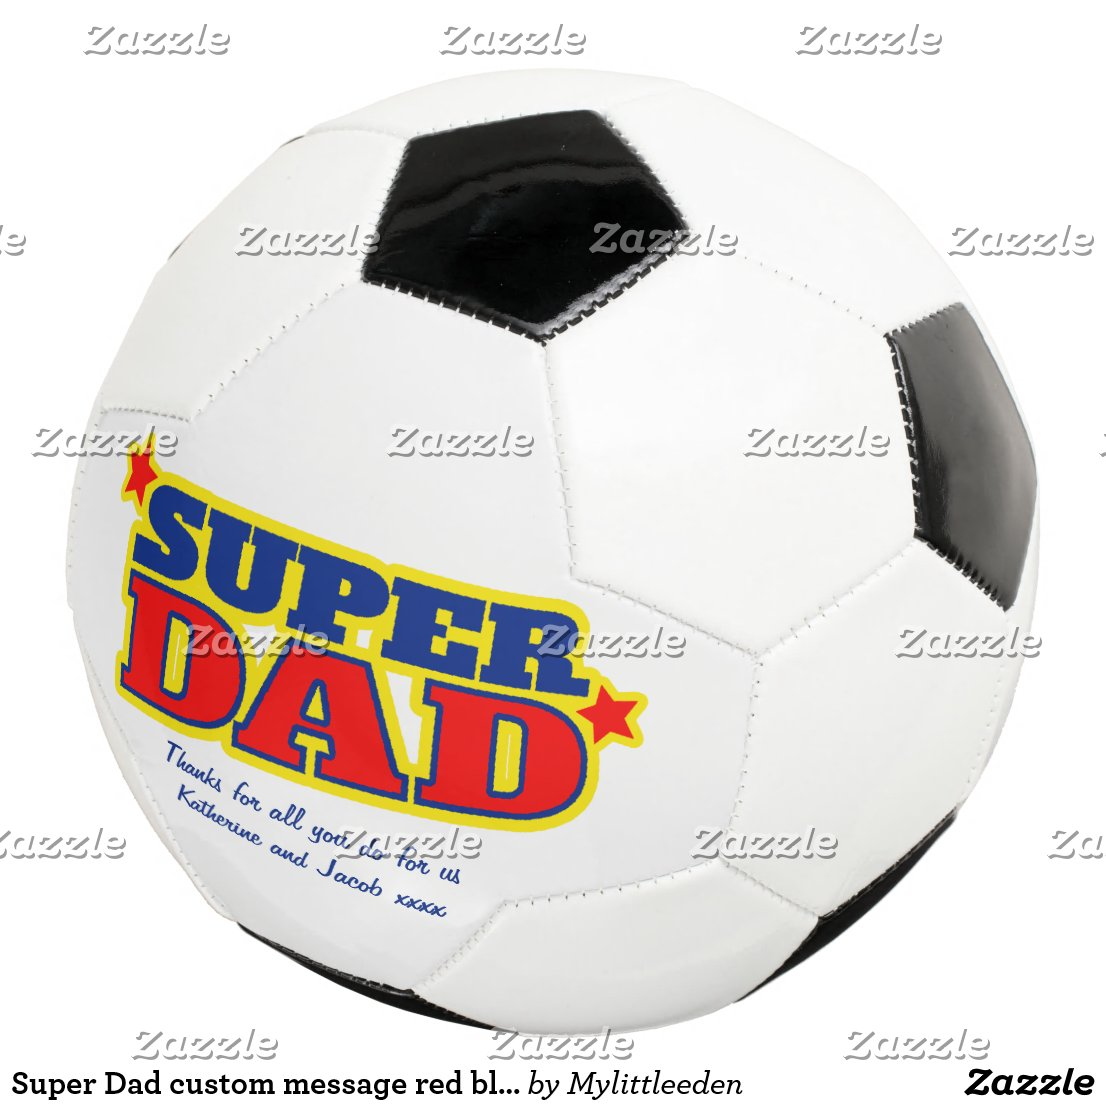 Super Dad custom message red blue yellow ball